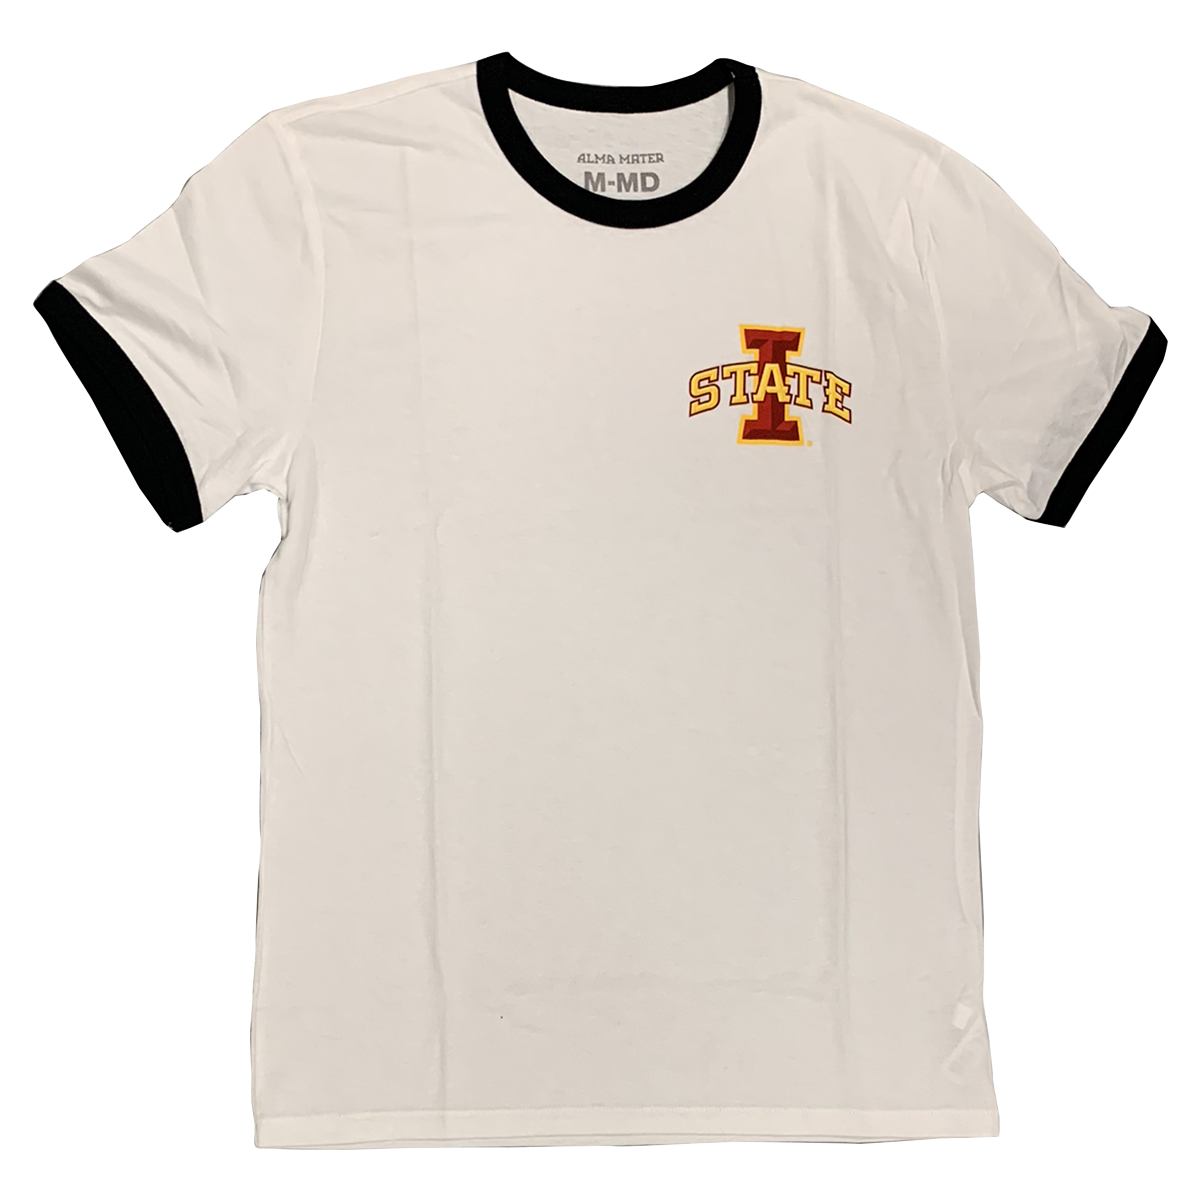 IOWA STATE UNIVERSITY Cyclones Men's Ringer Tee